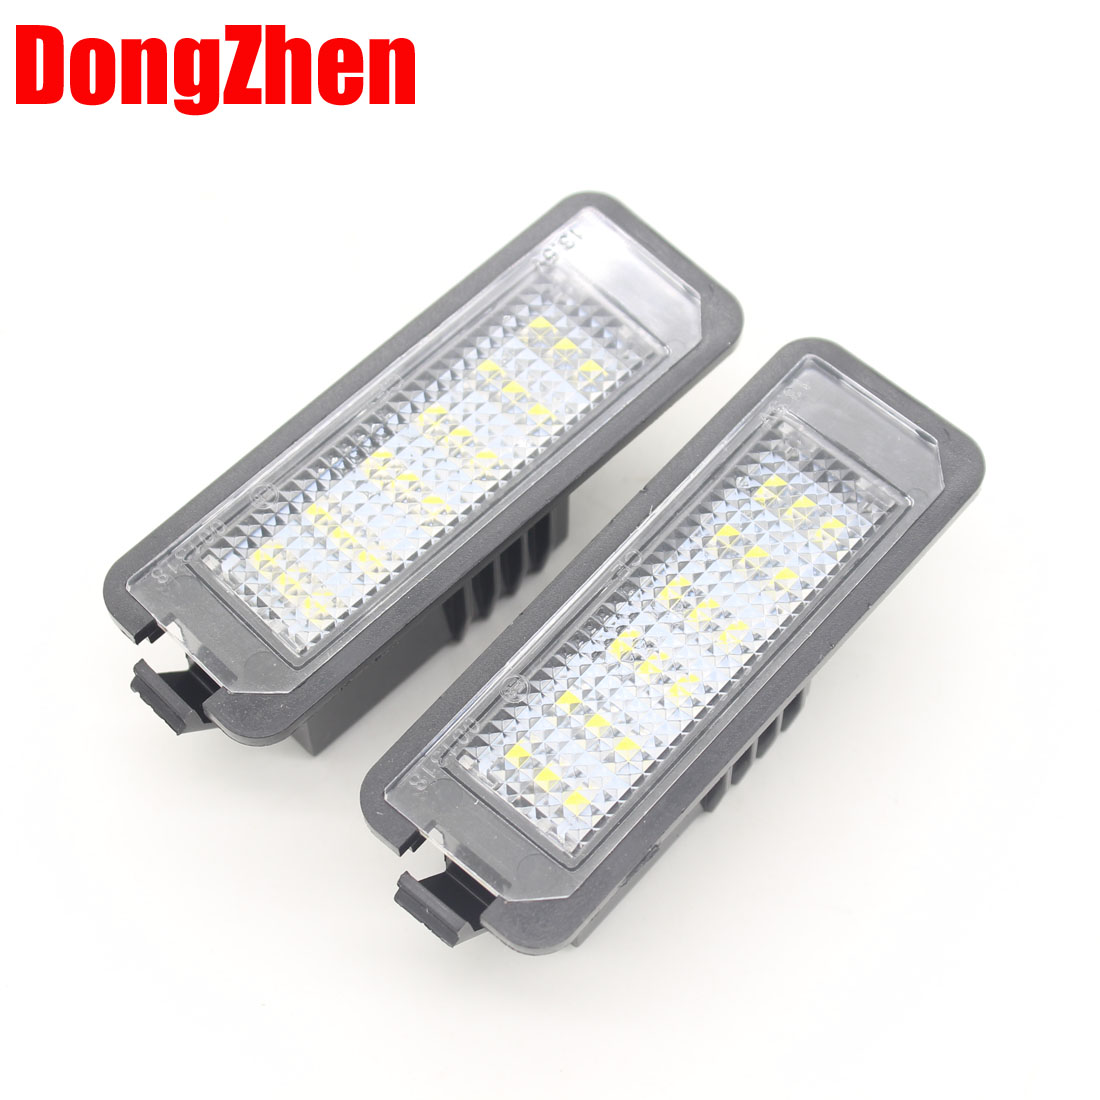 DongZhen auto accessories car styling Fit for Golf4 Golf5 Passat Polo LED License plate lights Free shipping  2pcs 2pcs led rear back car license plate light lamp for vw golf4 golf6 polo passat car super white bright 12v car styling